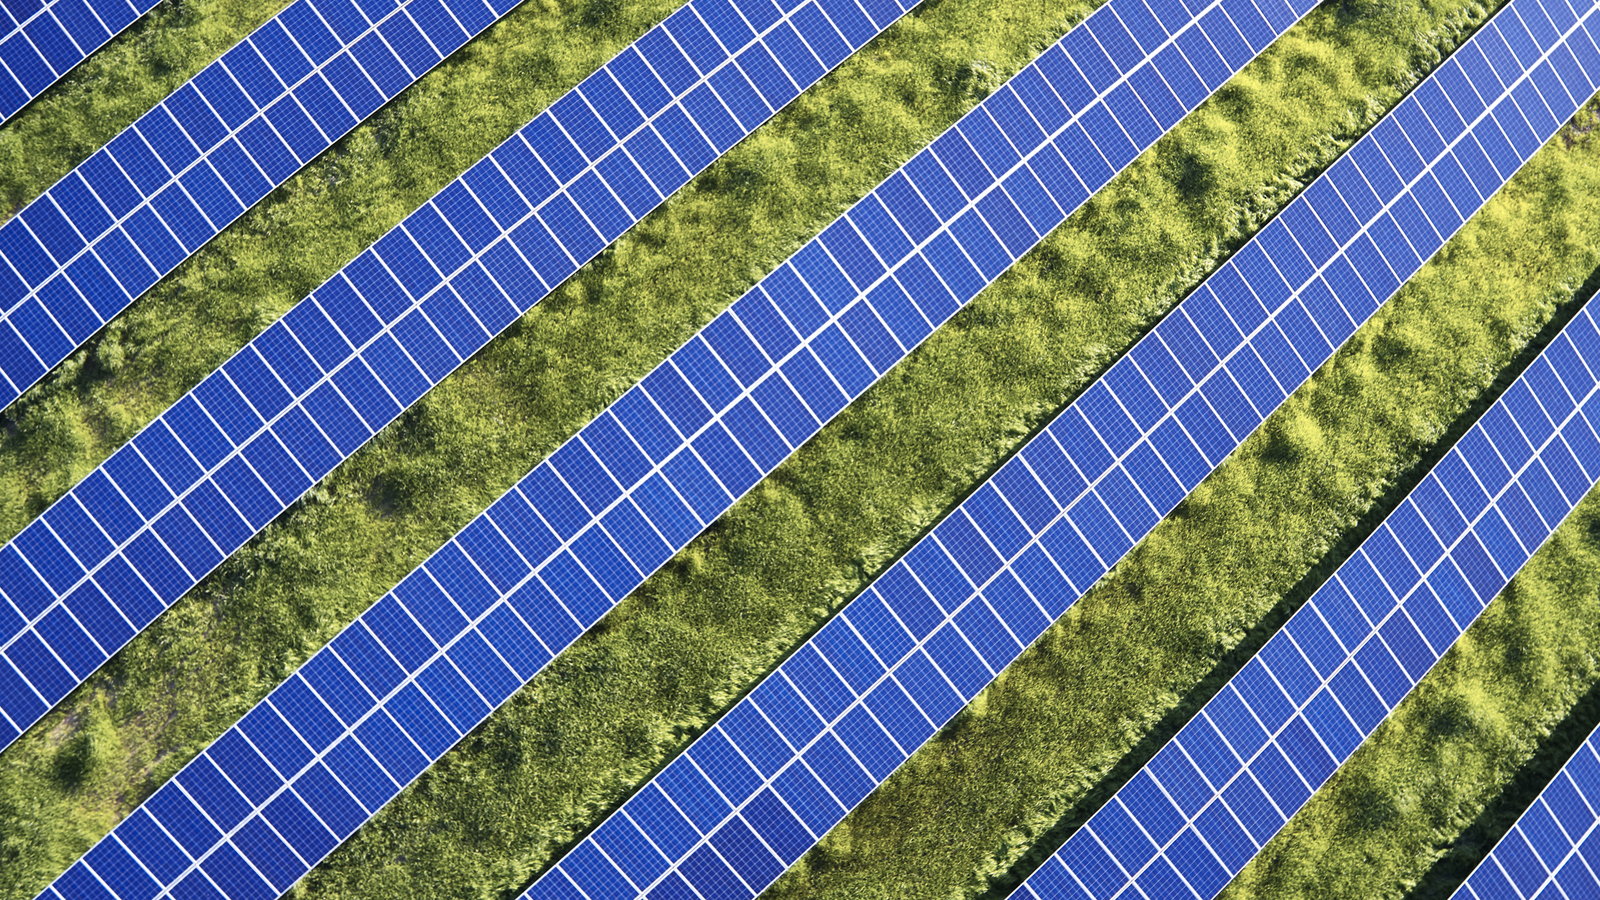 USA, North Carolina, Low-level aerial photograph of solar panels in a solar farm